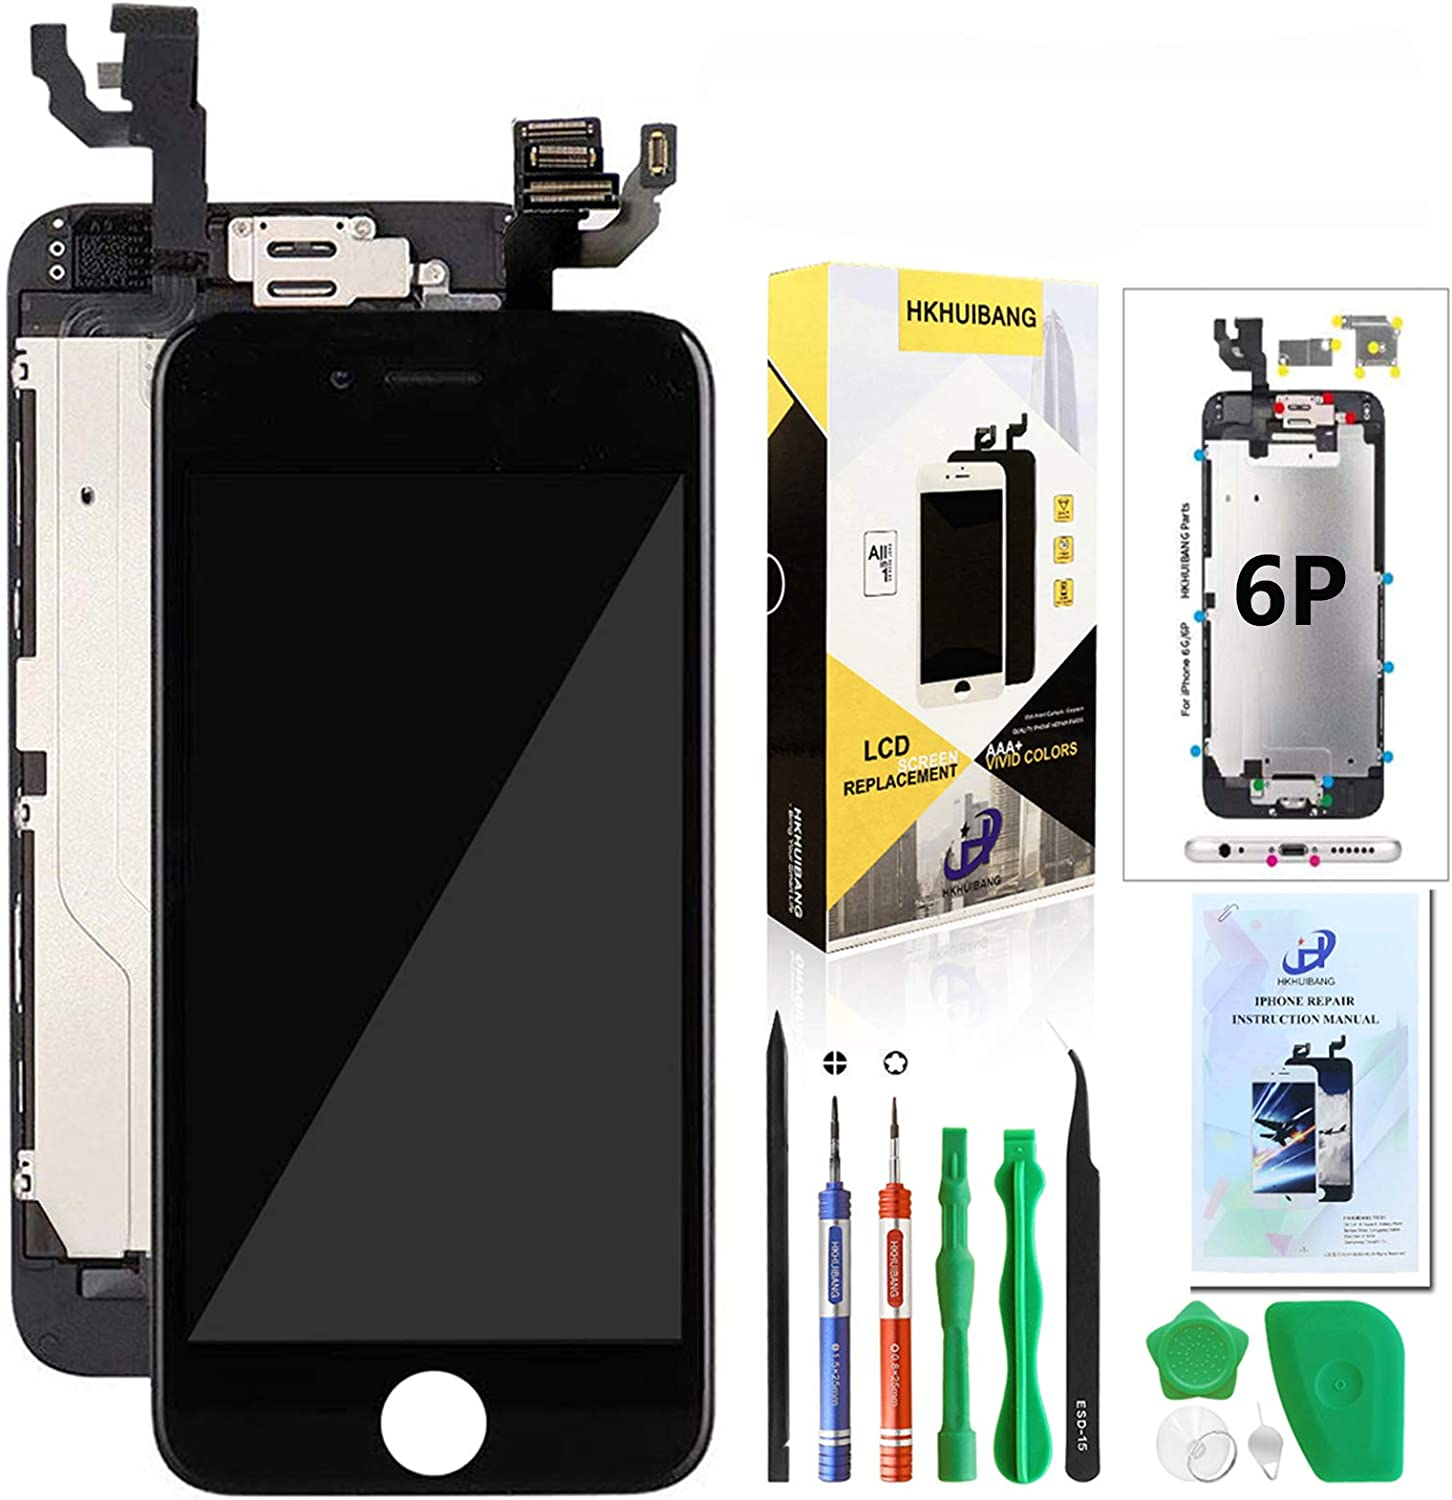 Compatible with iPhone 6 Plus Screen Replacement Black 5.5'',Hkhuibang Pre-Assembled LCD Touch Digitizer Display Full Assembly with OEM Front Camera Proximity Sensor Earpiece Speaker Repair Tool